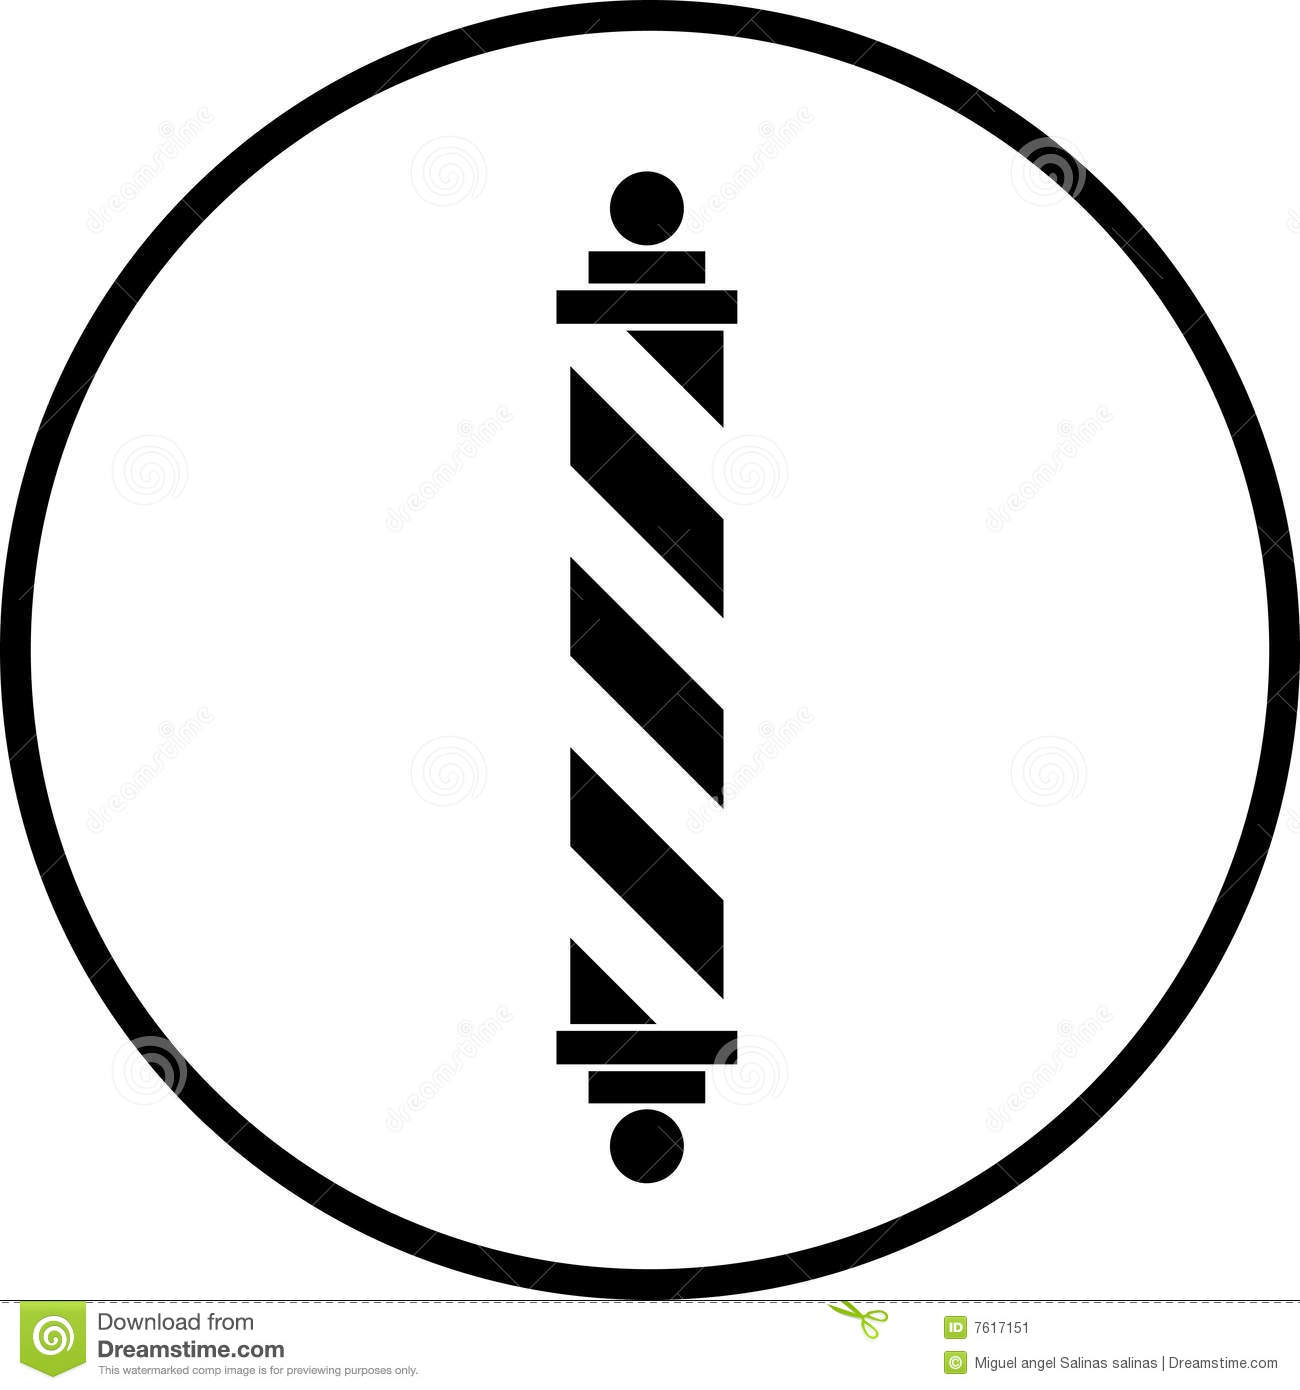 Barber Pole Vector Symbol Stock Image - Image: 7617151